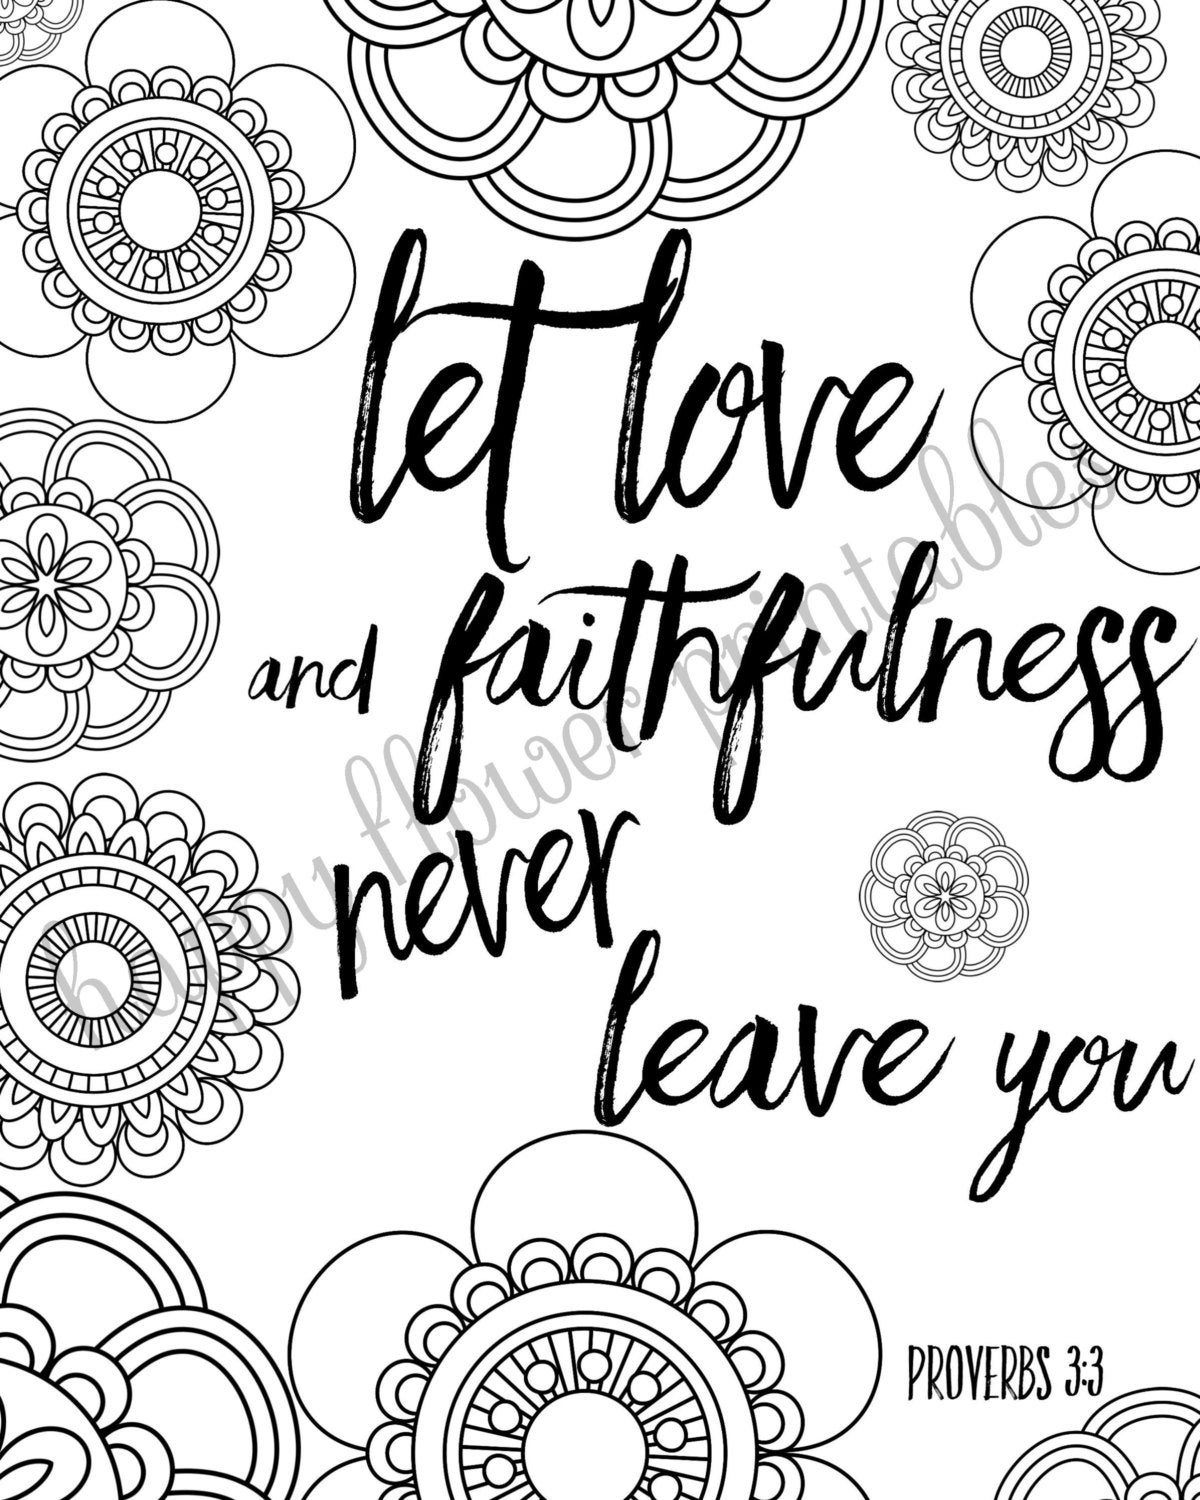 coloring pages with bible verses bible verse coloring page 01 by tnlizzy on deviantart coloring bible pages verses with